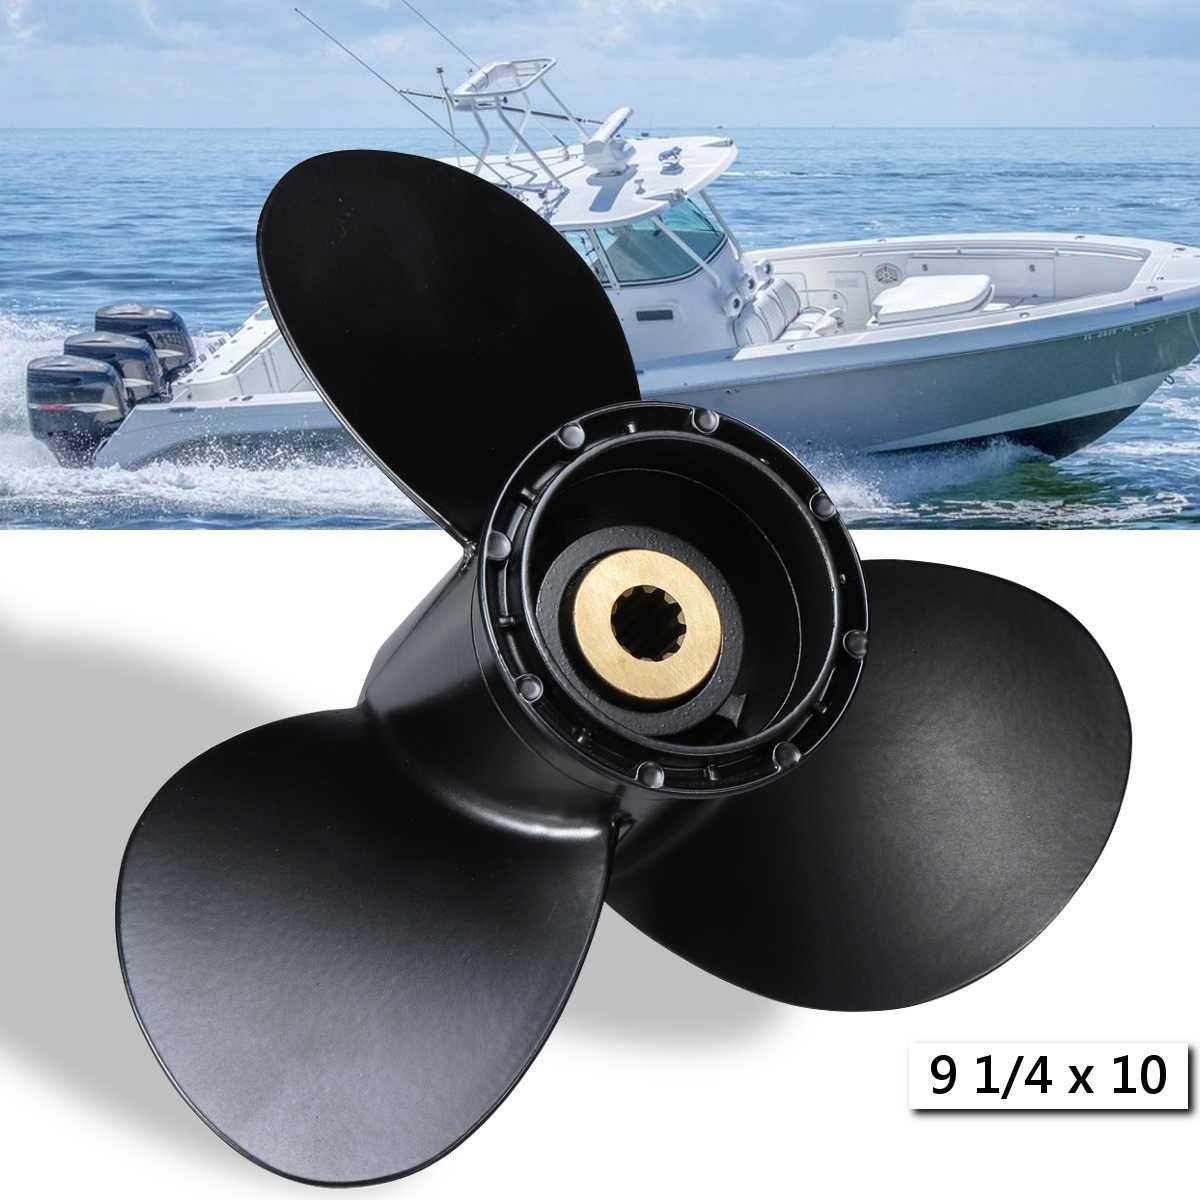 Outboard Propeller 58100-93733-019 For Suzuki 8-20HP 9 1/4 X 10 Boat Aluminum Alloy Black 3 Blades 10 Spline Tooths R Rotation